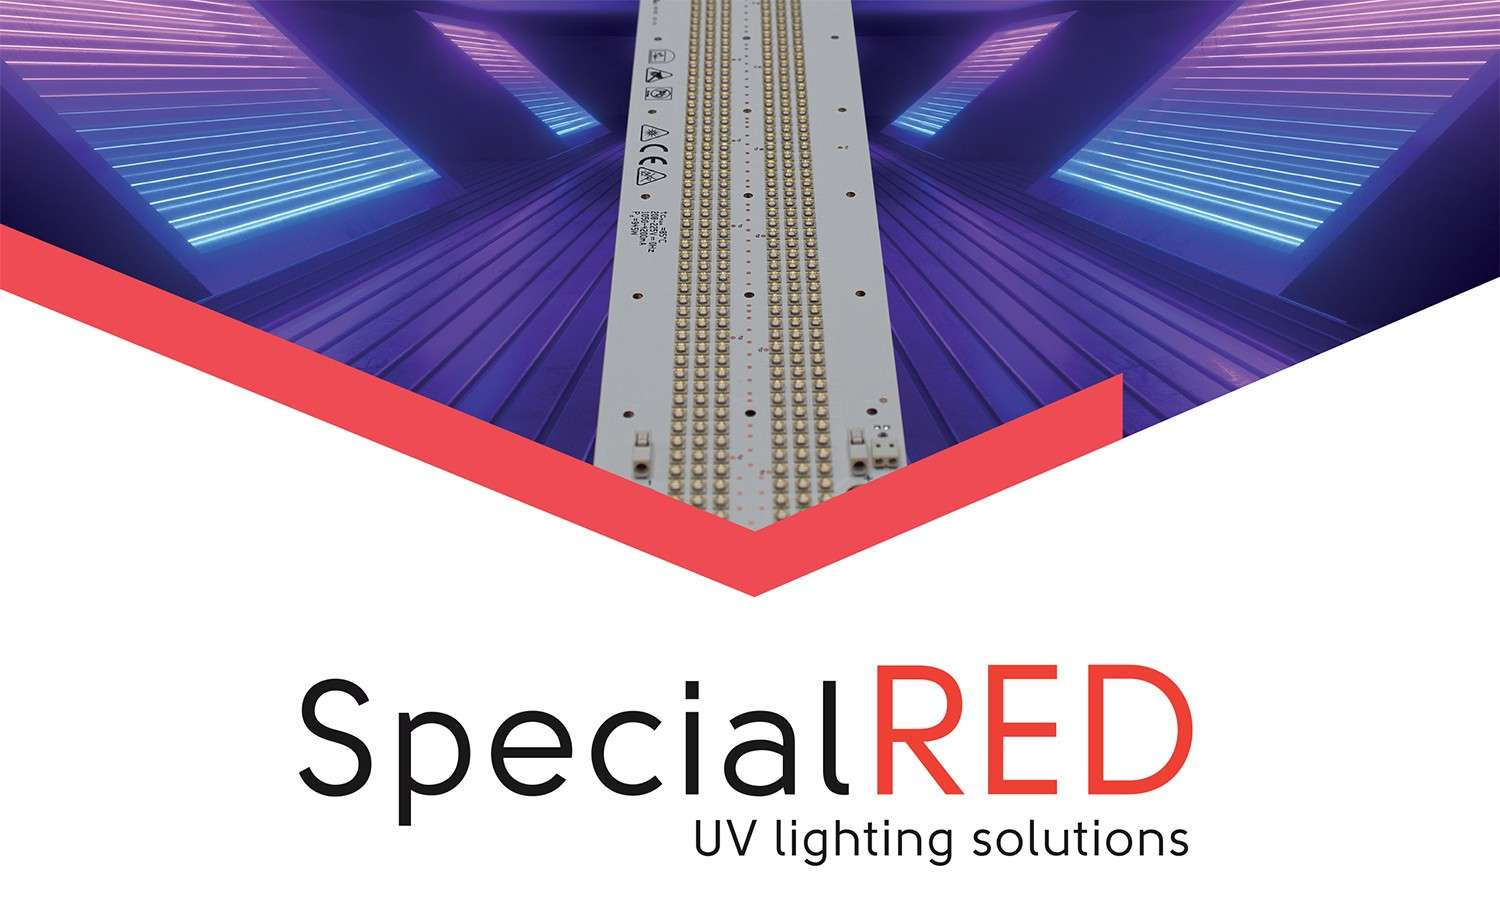 NEWS – UV lighting COVID19